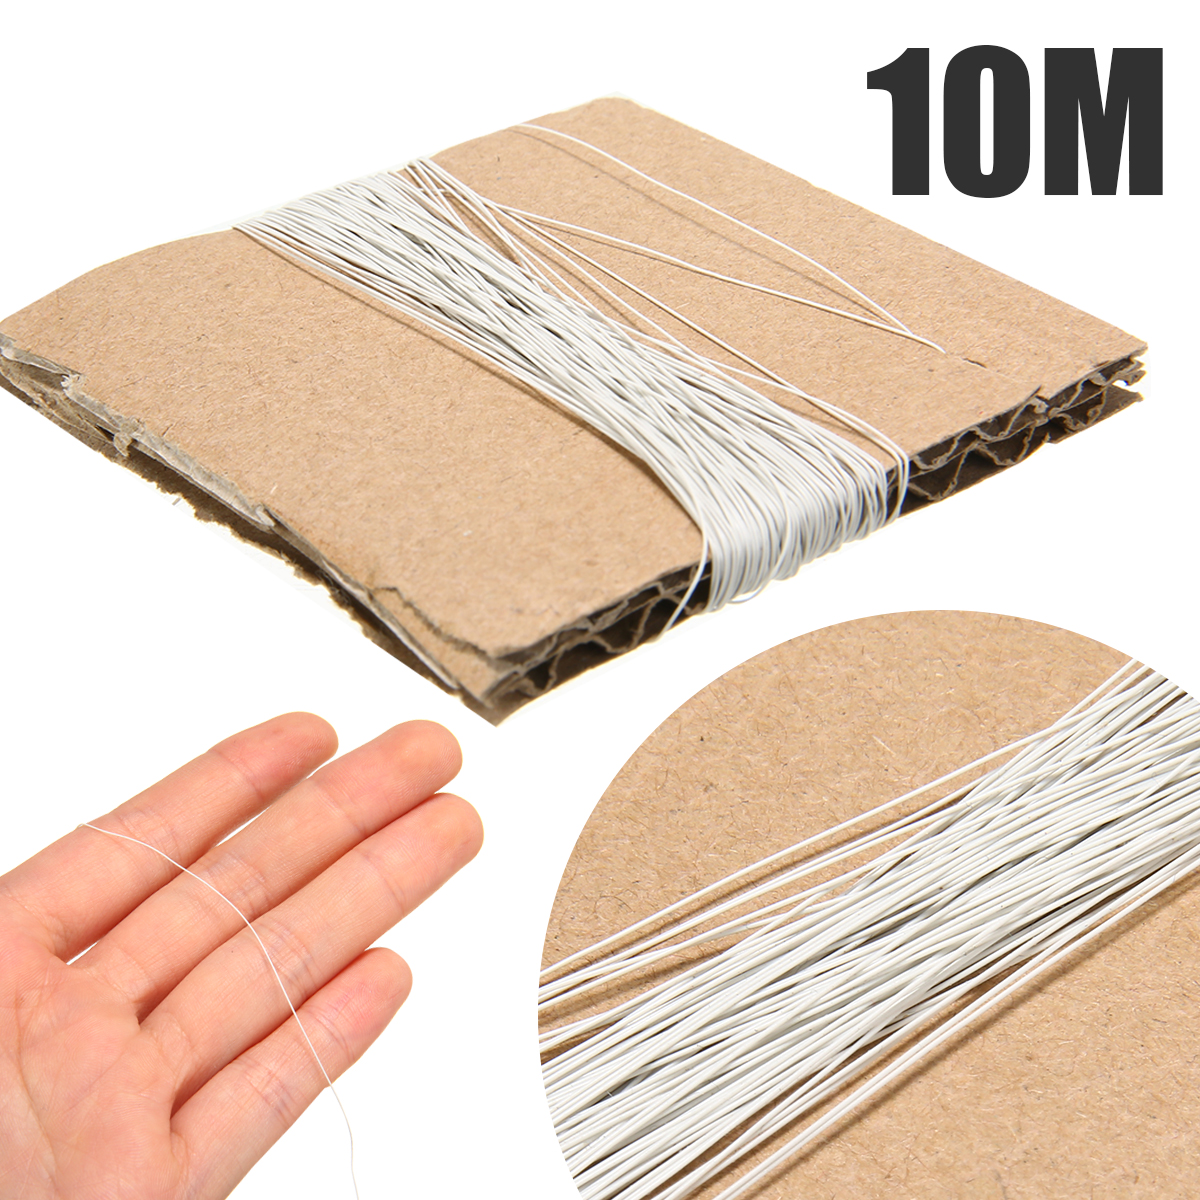 Durable 10m White Wire UL10064 36AWG 0.028mm Solder Micro Litz Stranded Wire Cable For Household Appliances